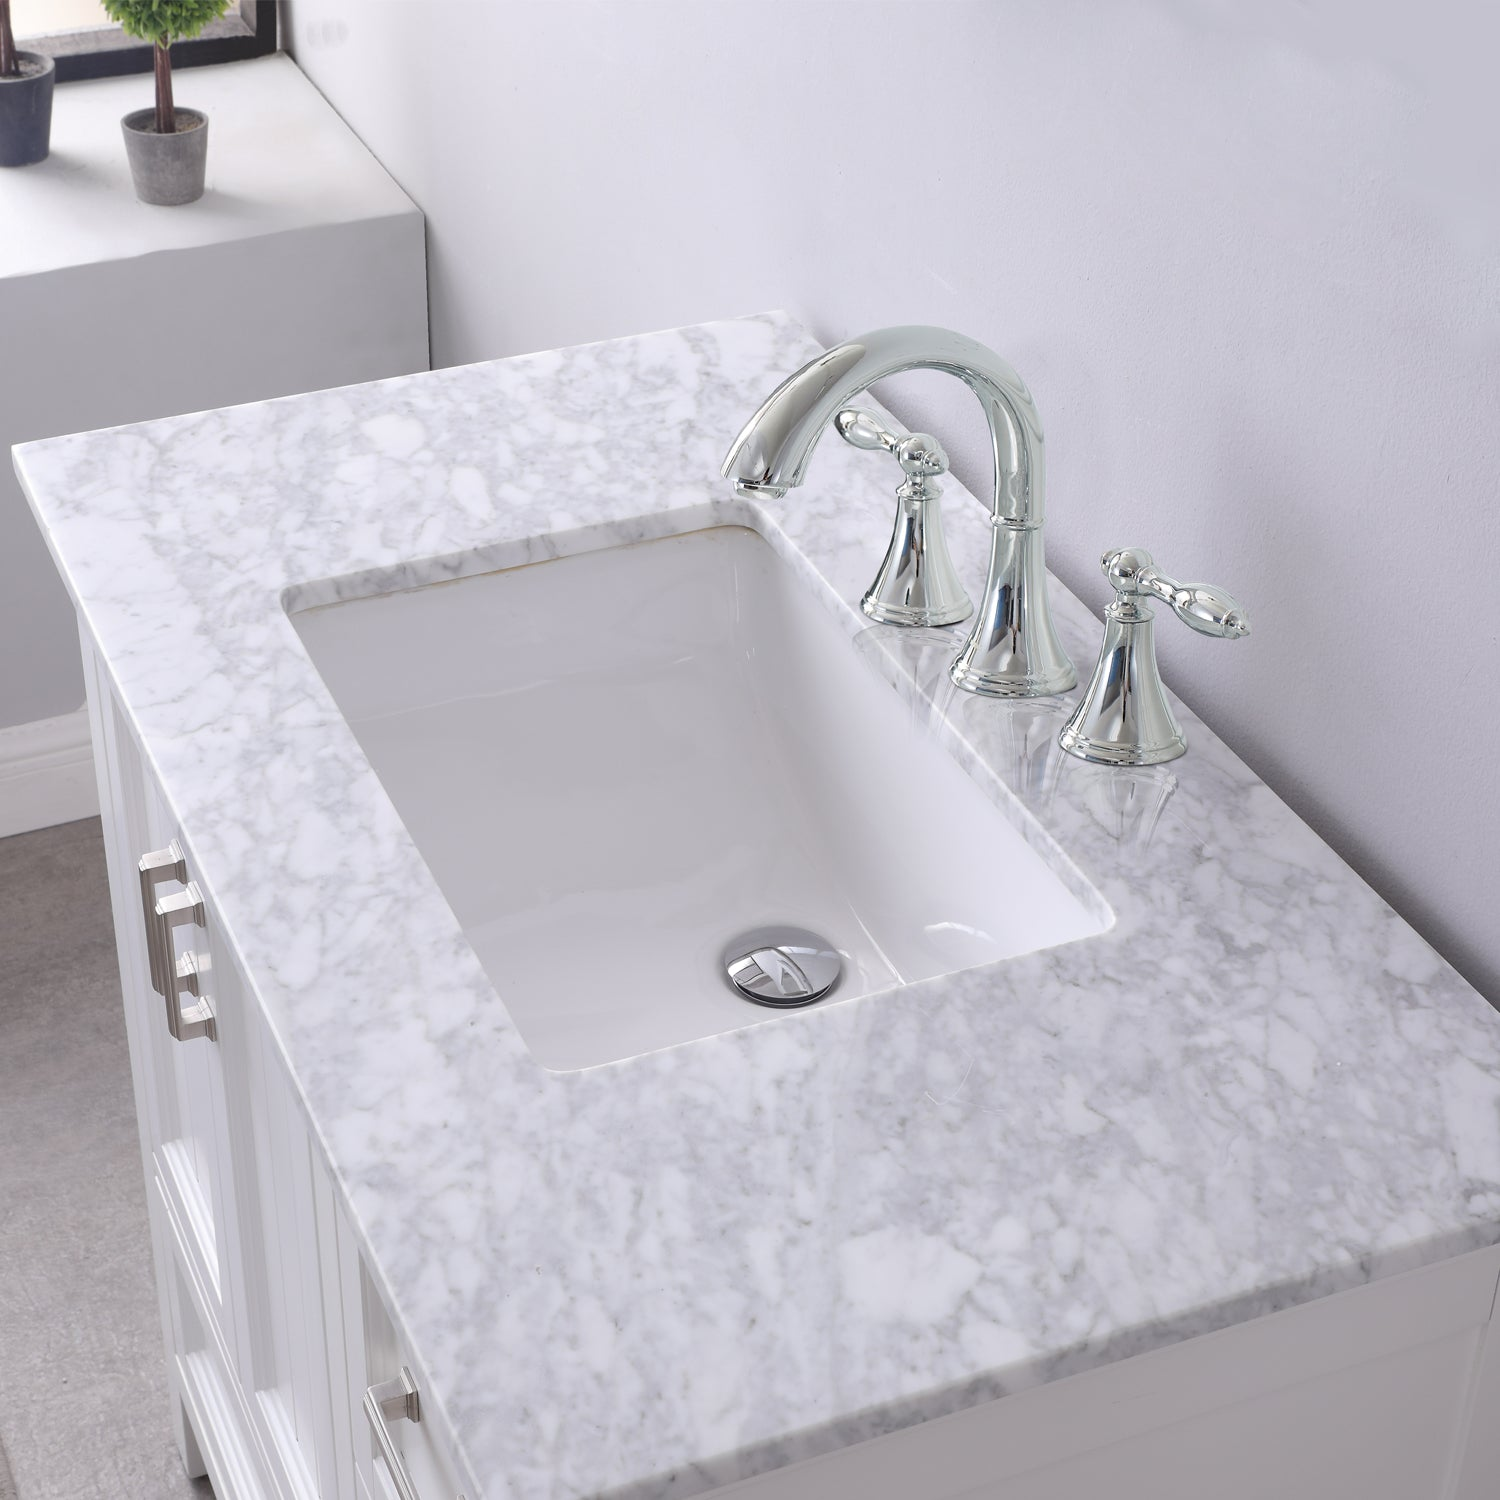 "Isla 36"" Single Bathroom Vanity Set in White and Carrara White Marble Countertop with Mirror"